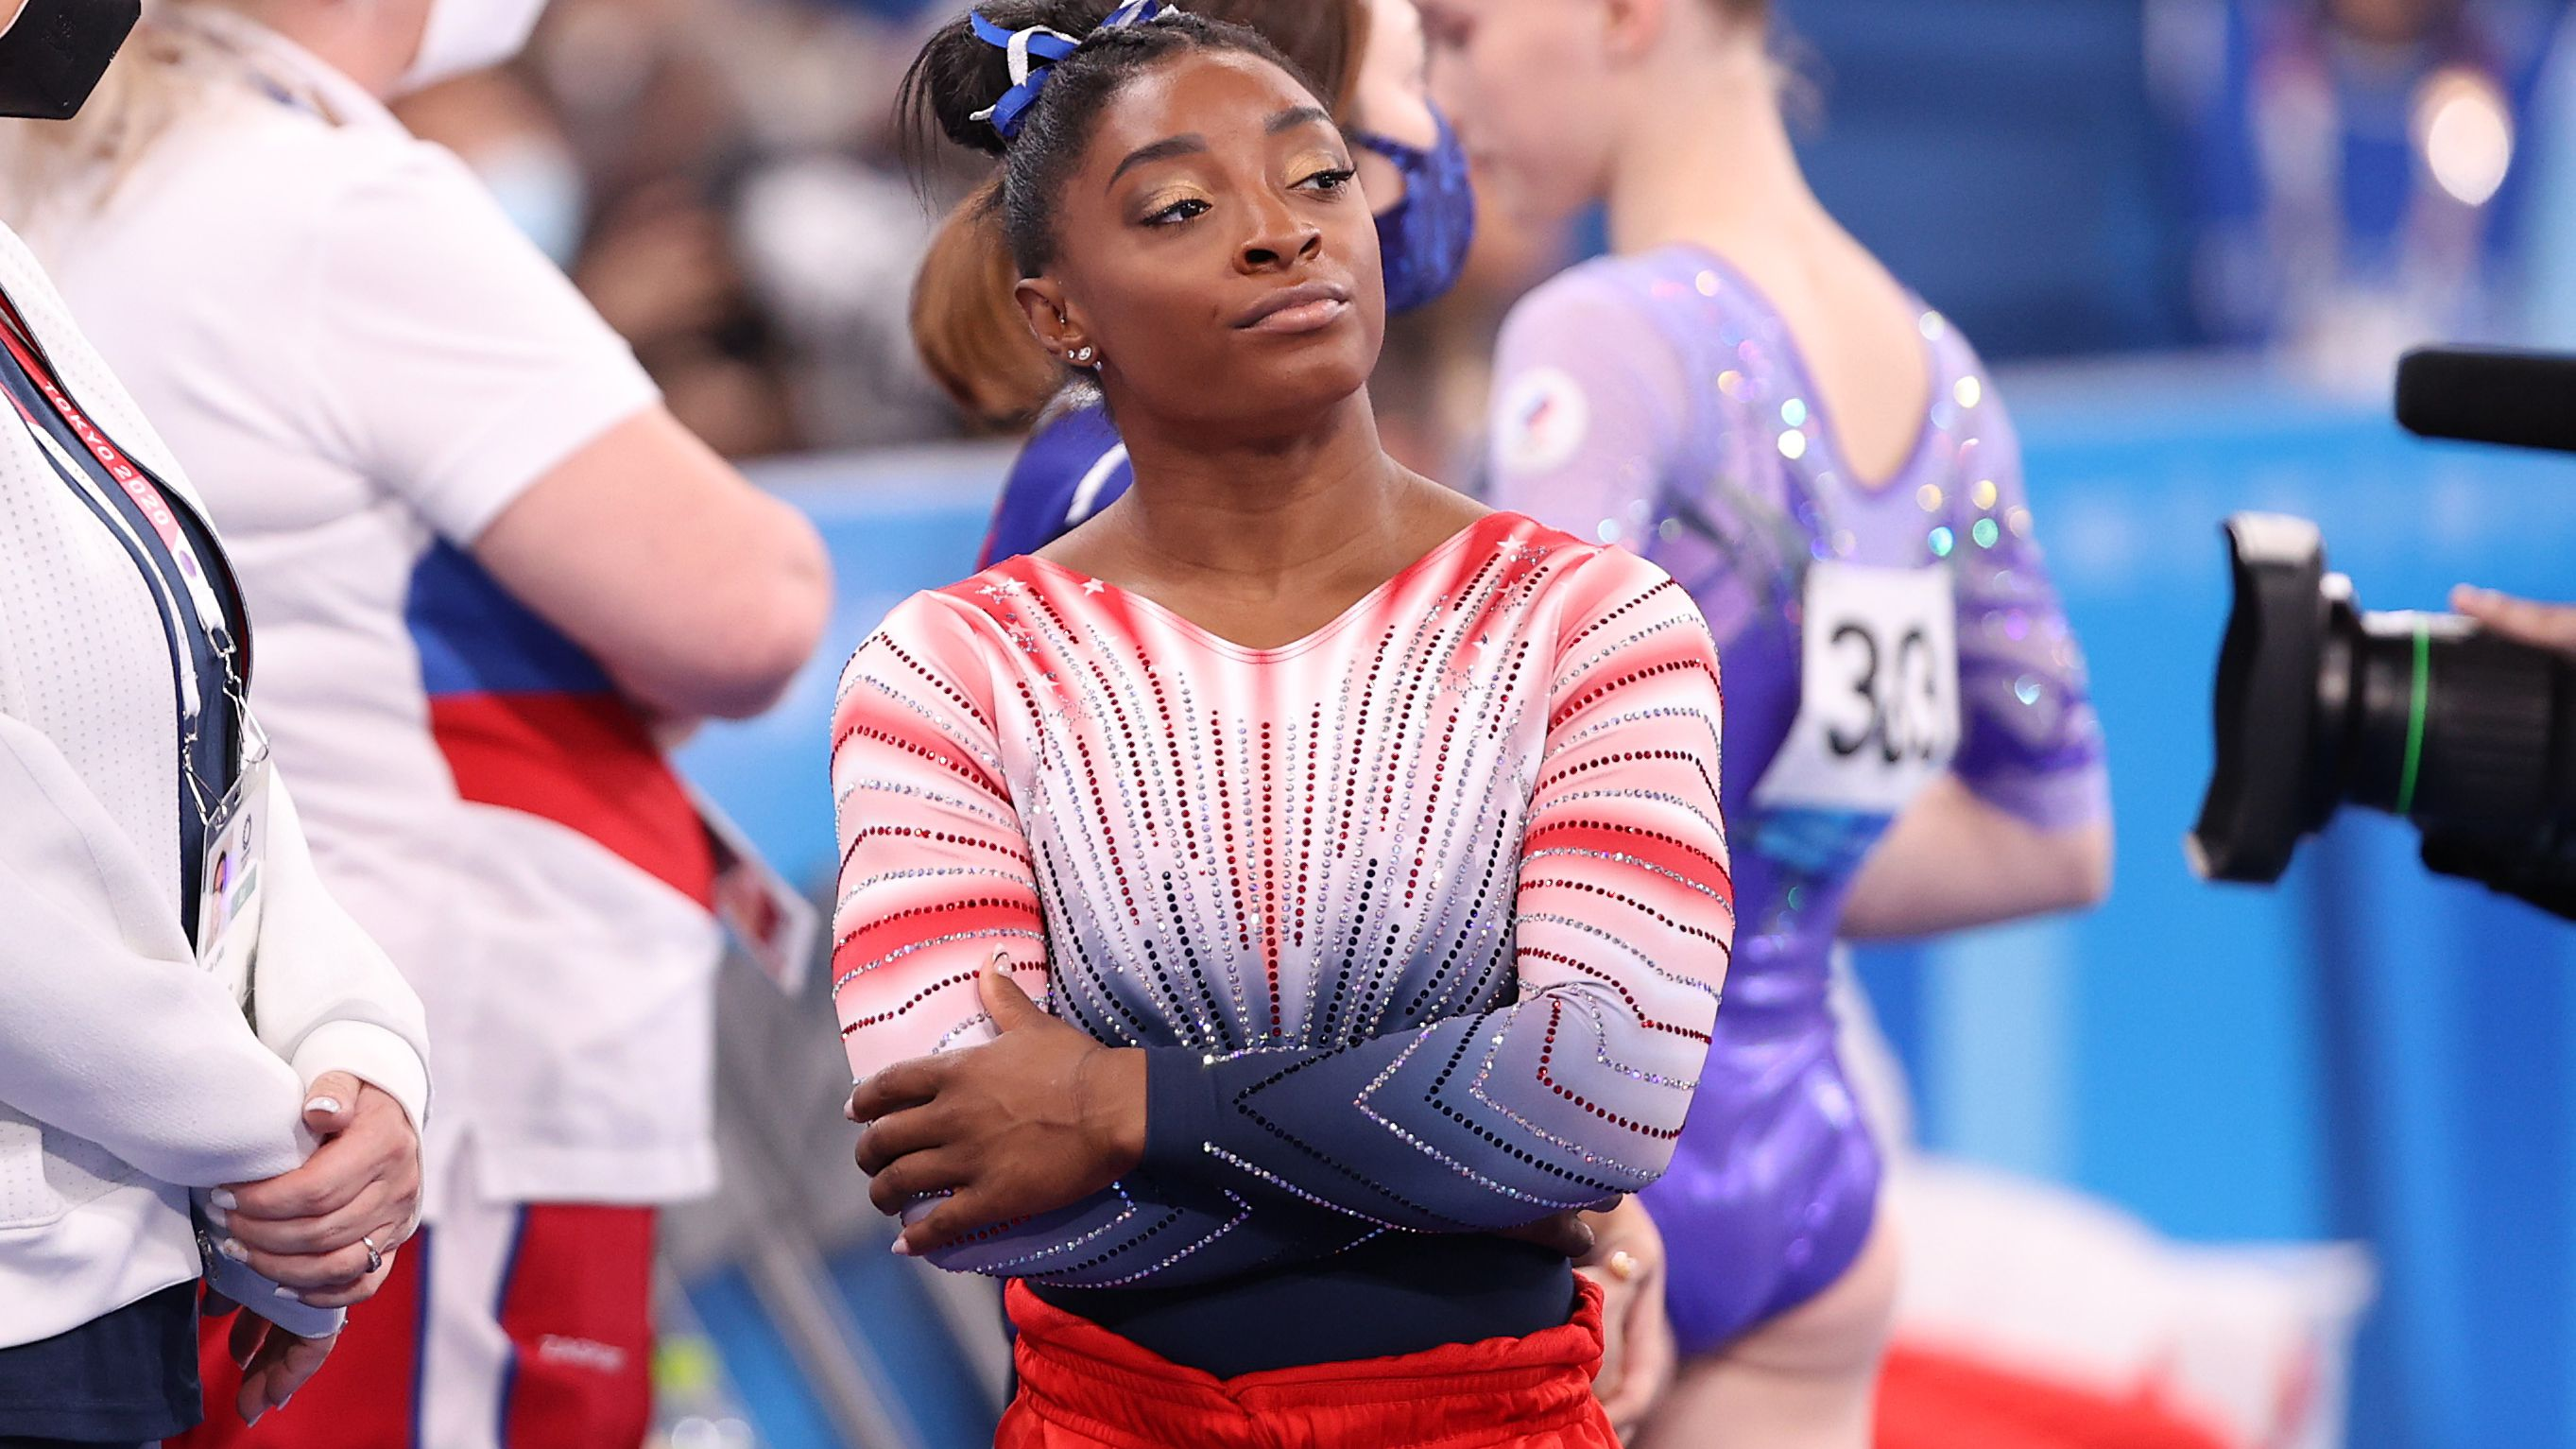 Simone Biles of Team United States looks on during the Women's Balance Beam Final on day eleven of the Tokyo 2020 Olympic Games.